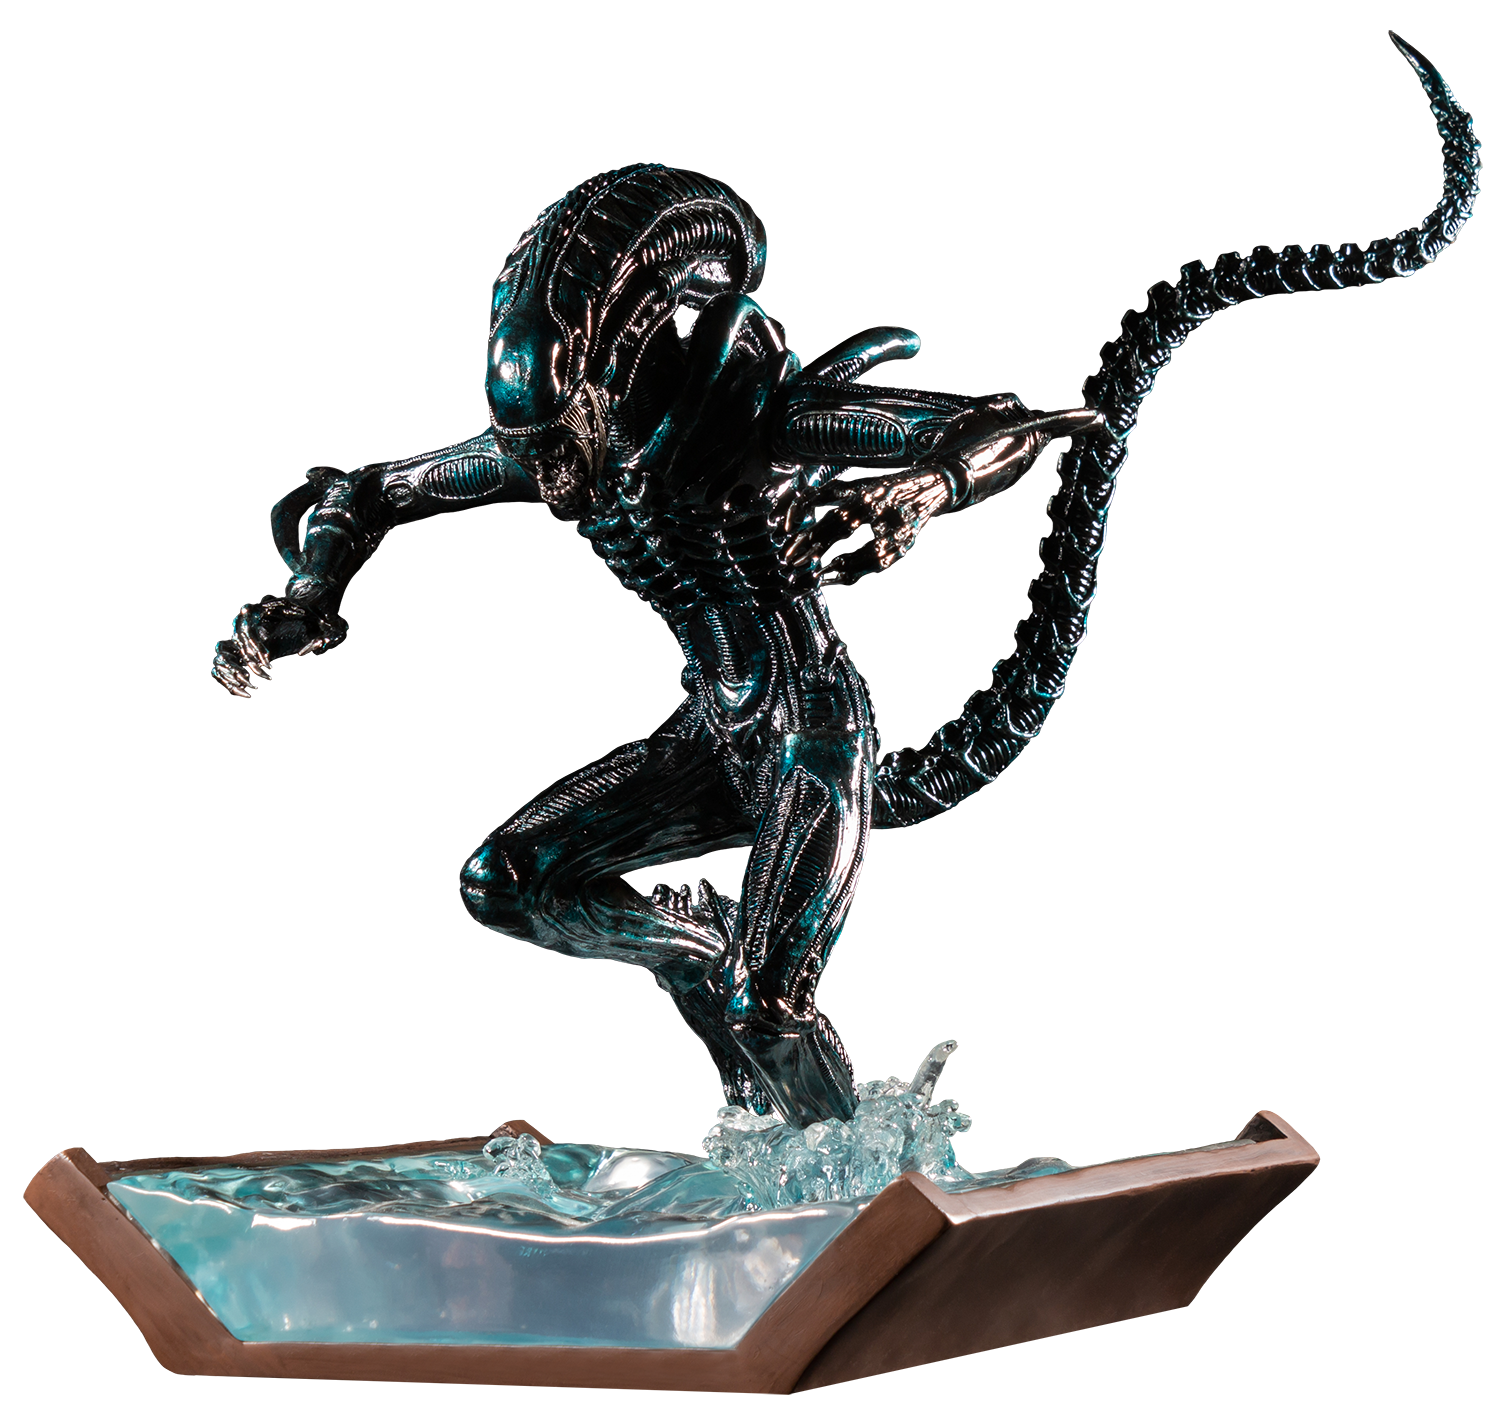 IKO1124-Alien-in-Water-Statue-New-Paint-4-253.png